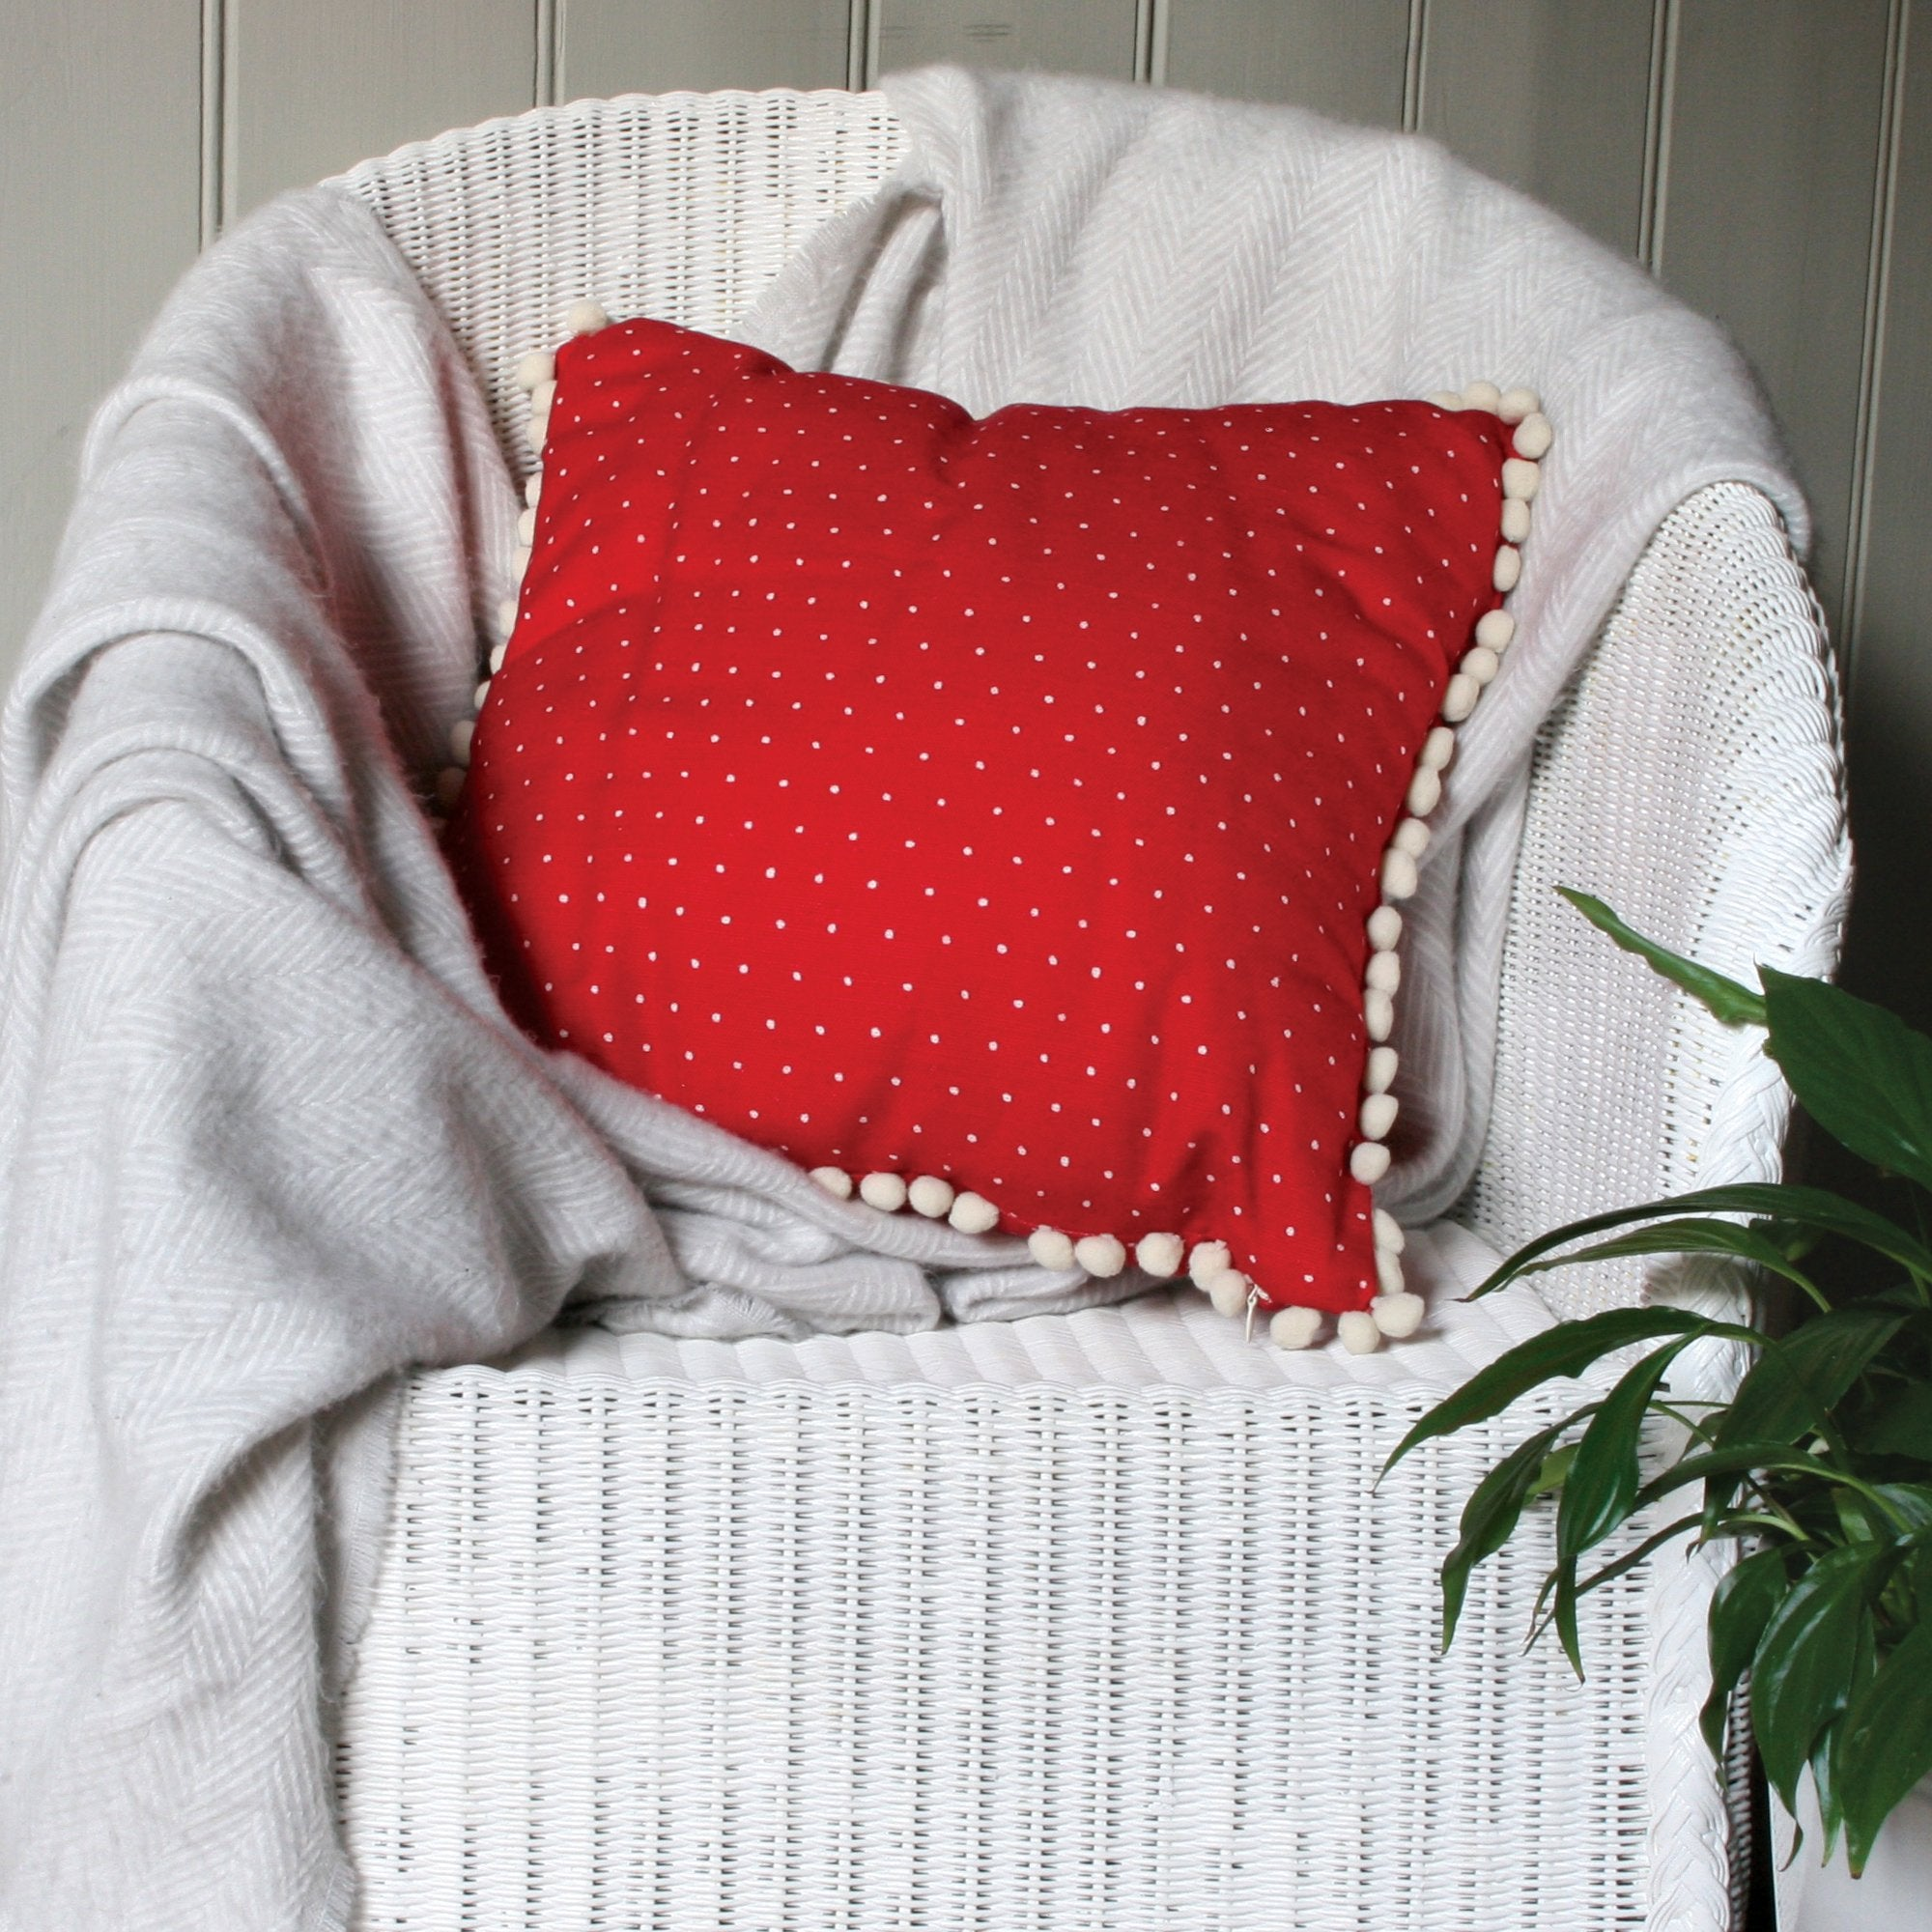 Red Cushion with White Polka dots and Cream Pom Pom Trim